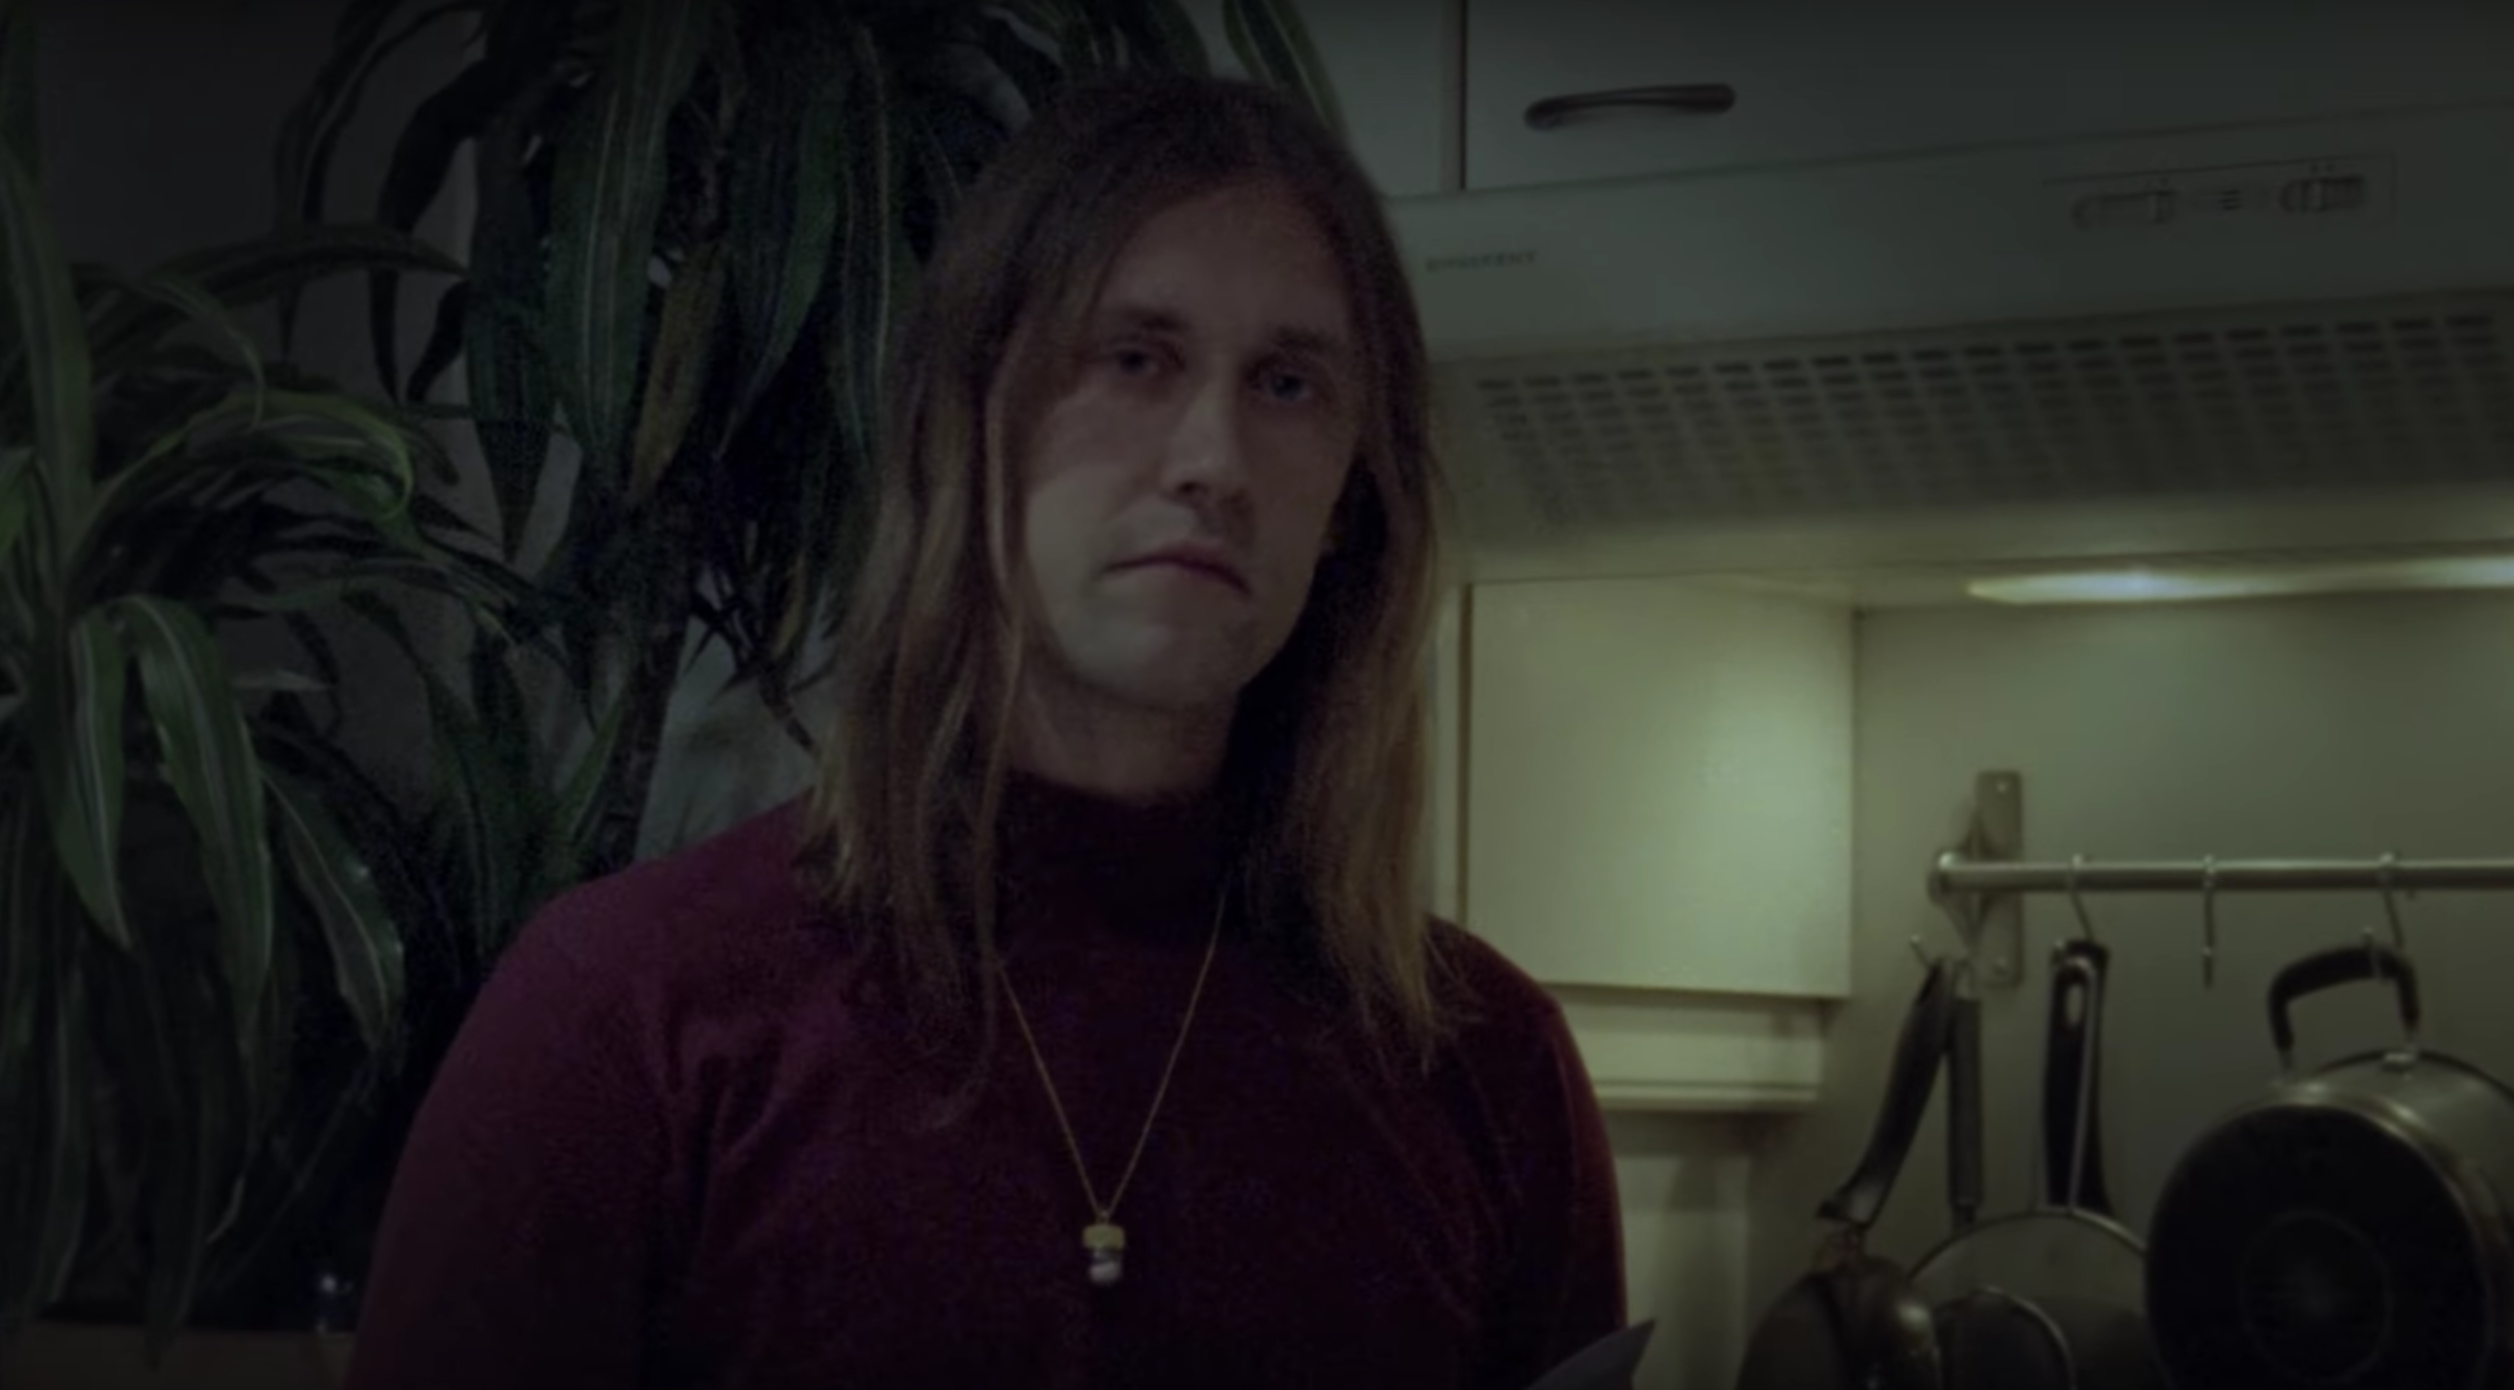 Jaakko Eino Kalevi offers up a clip for 'I'm Always Crying (Itken Aina)'